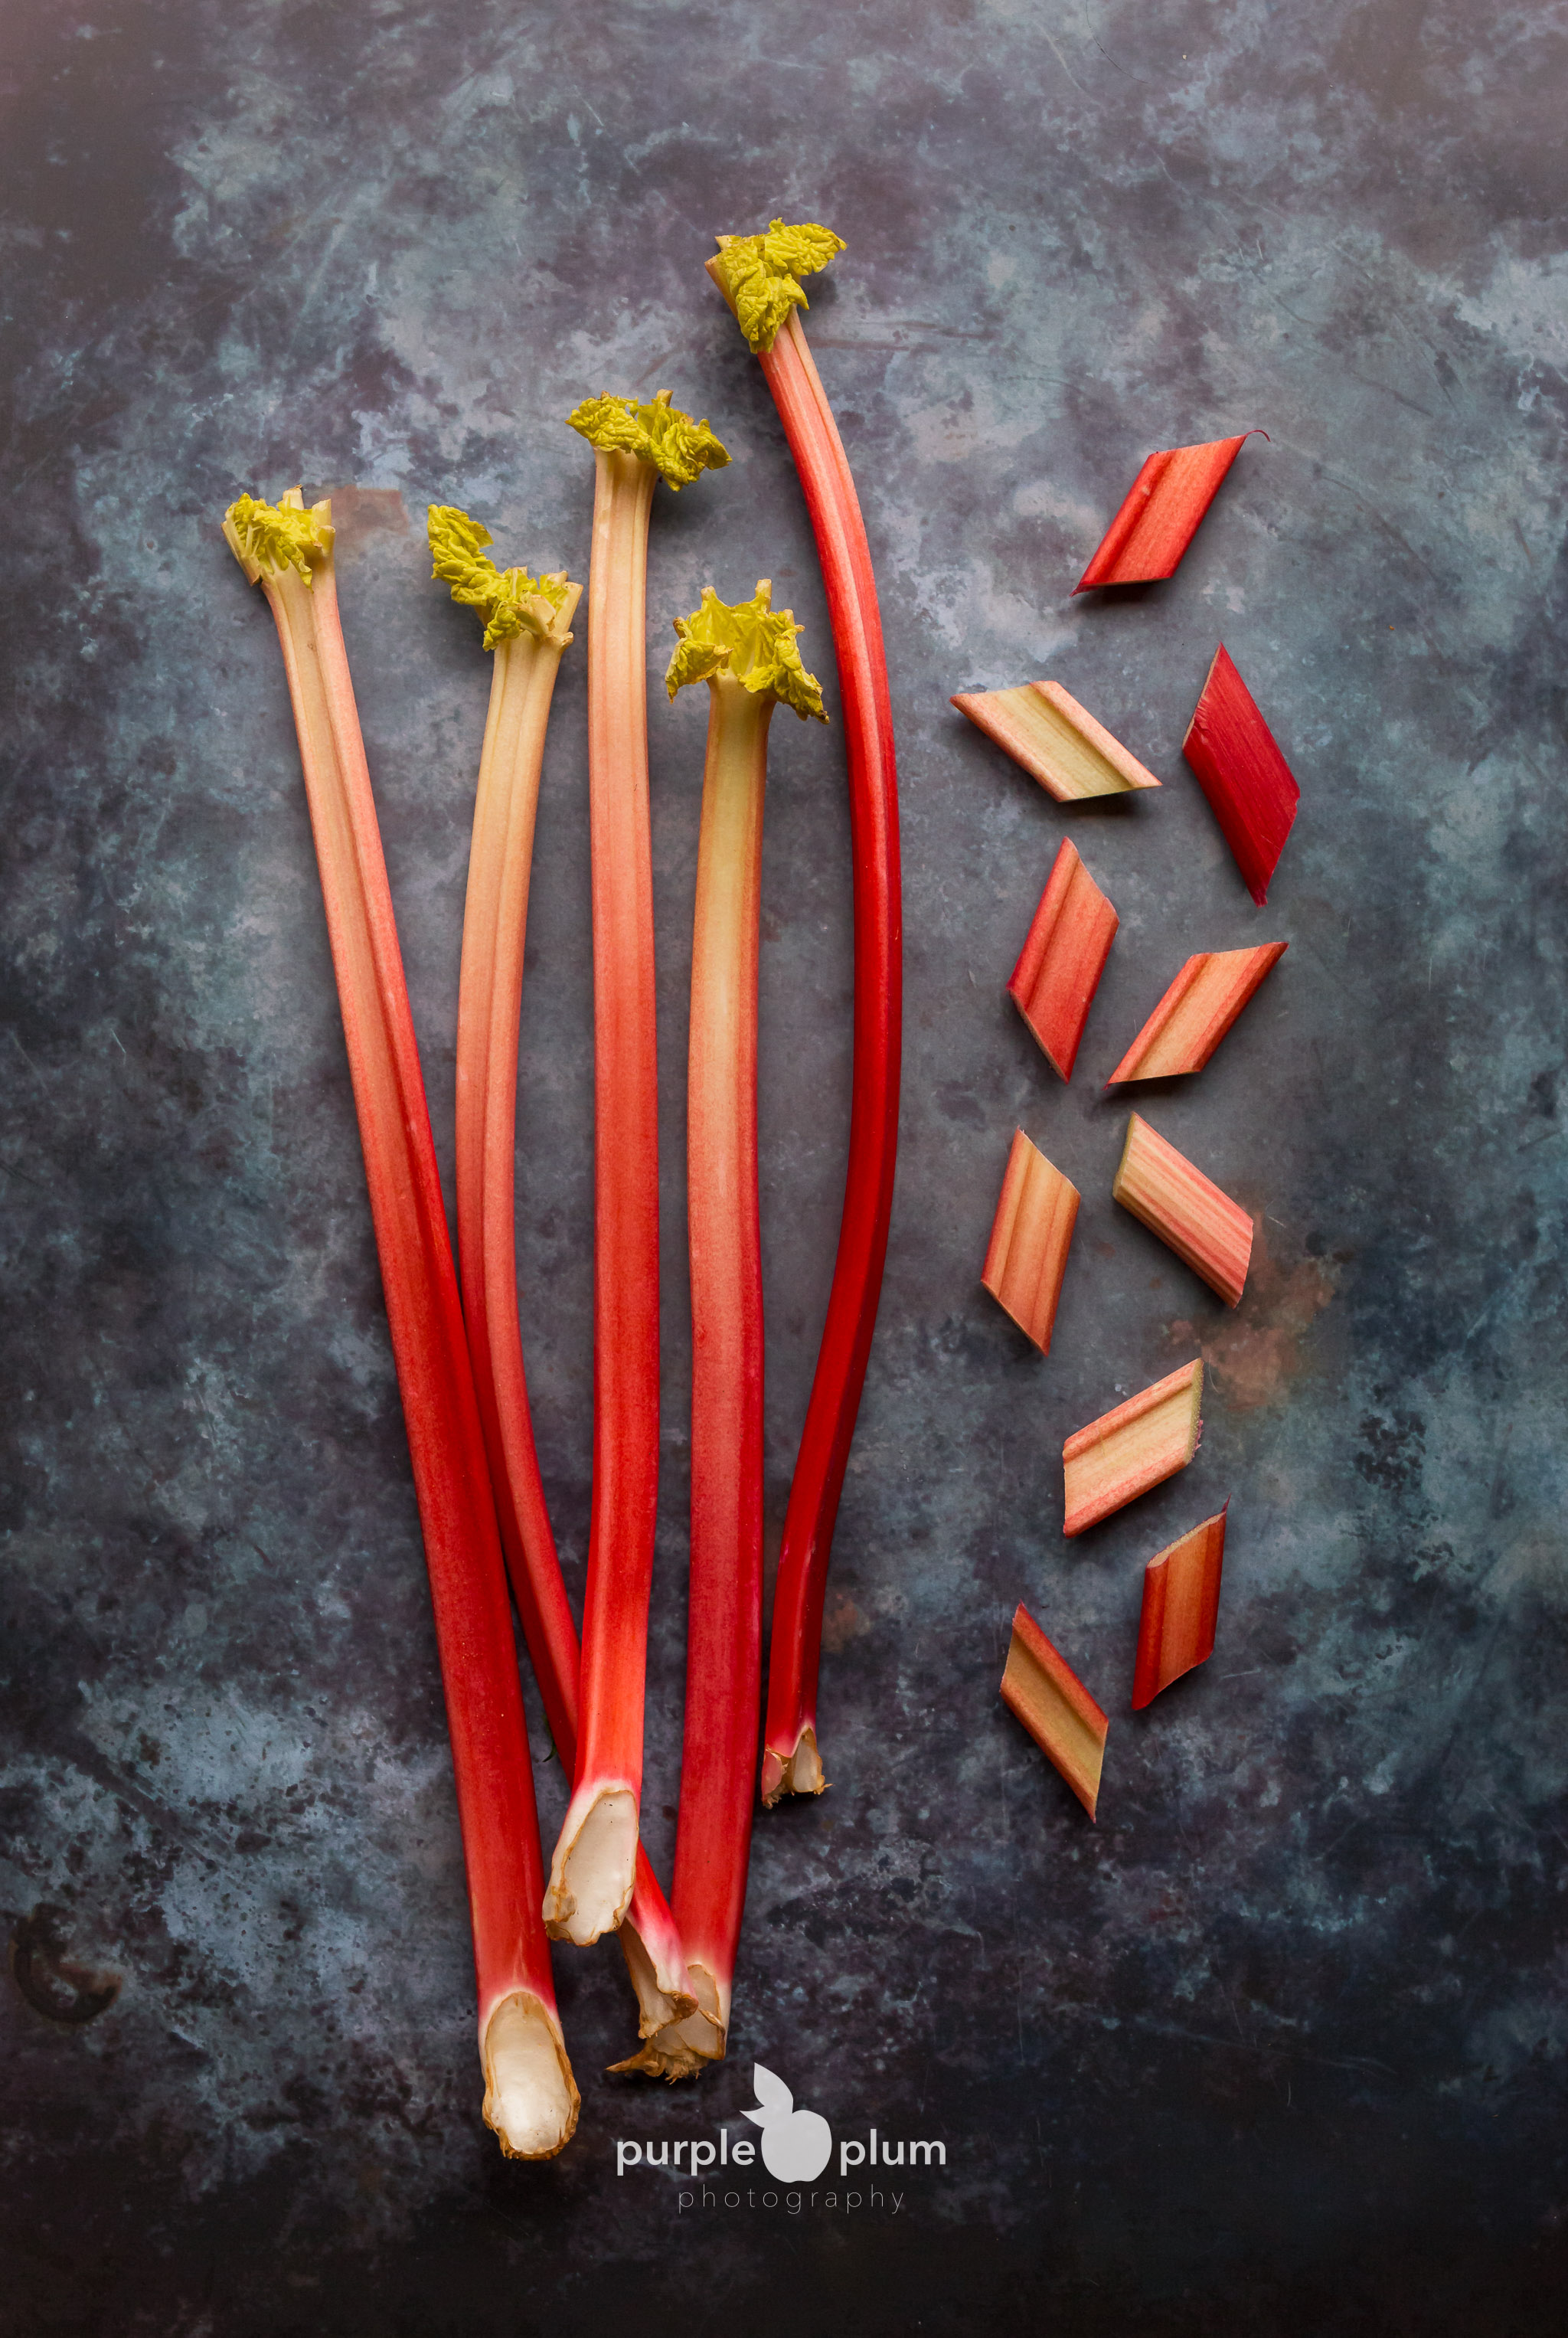 Rhubarb from the 'Forcing Sheds' of the Rhubarb Triangle of West Yorkshire